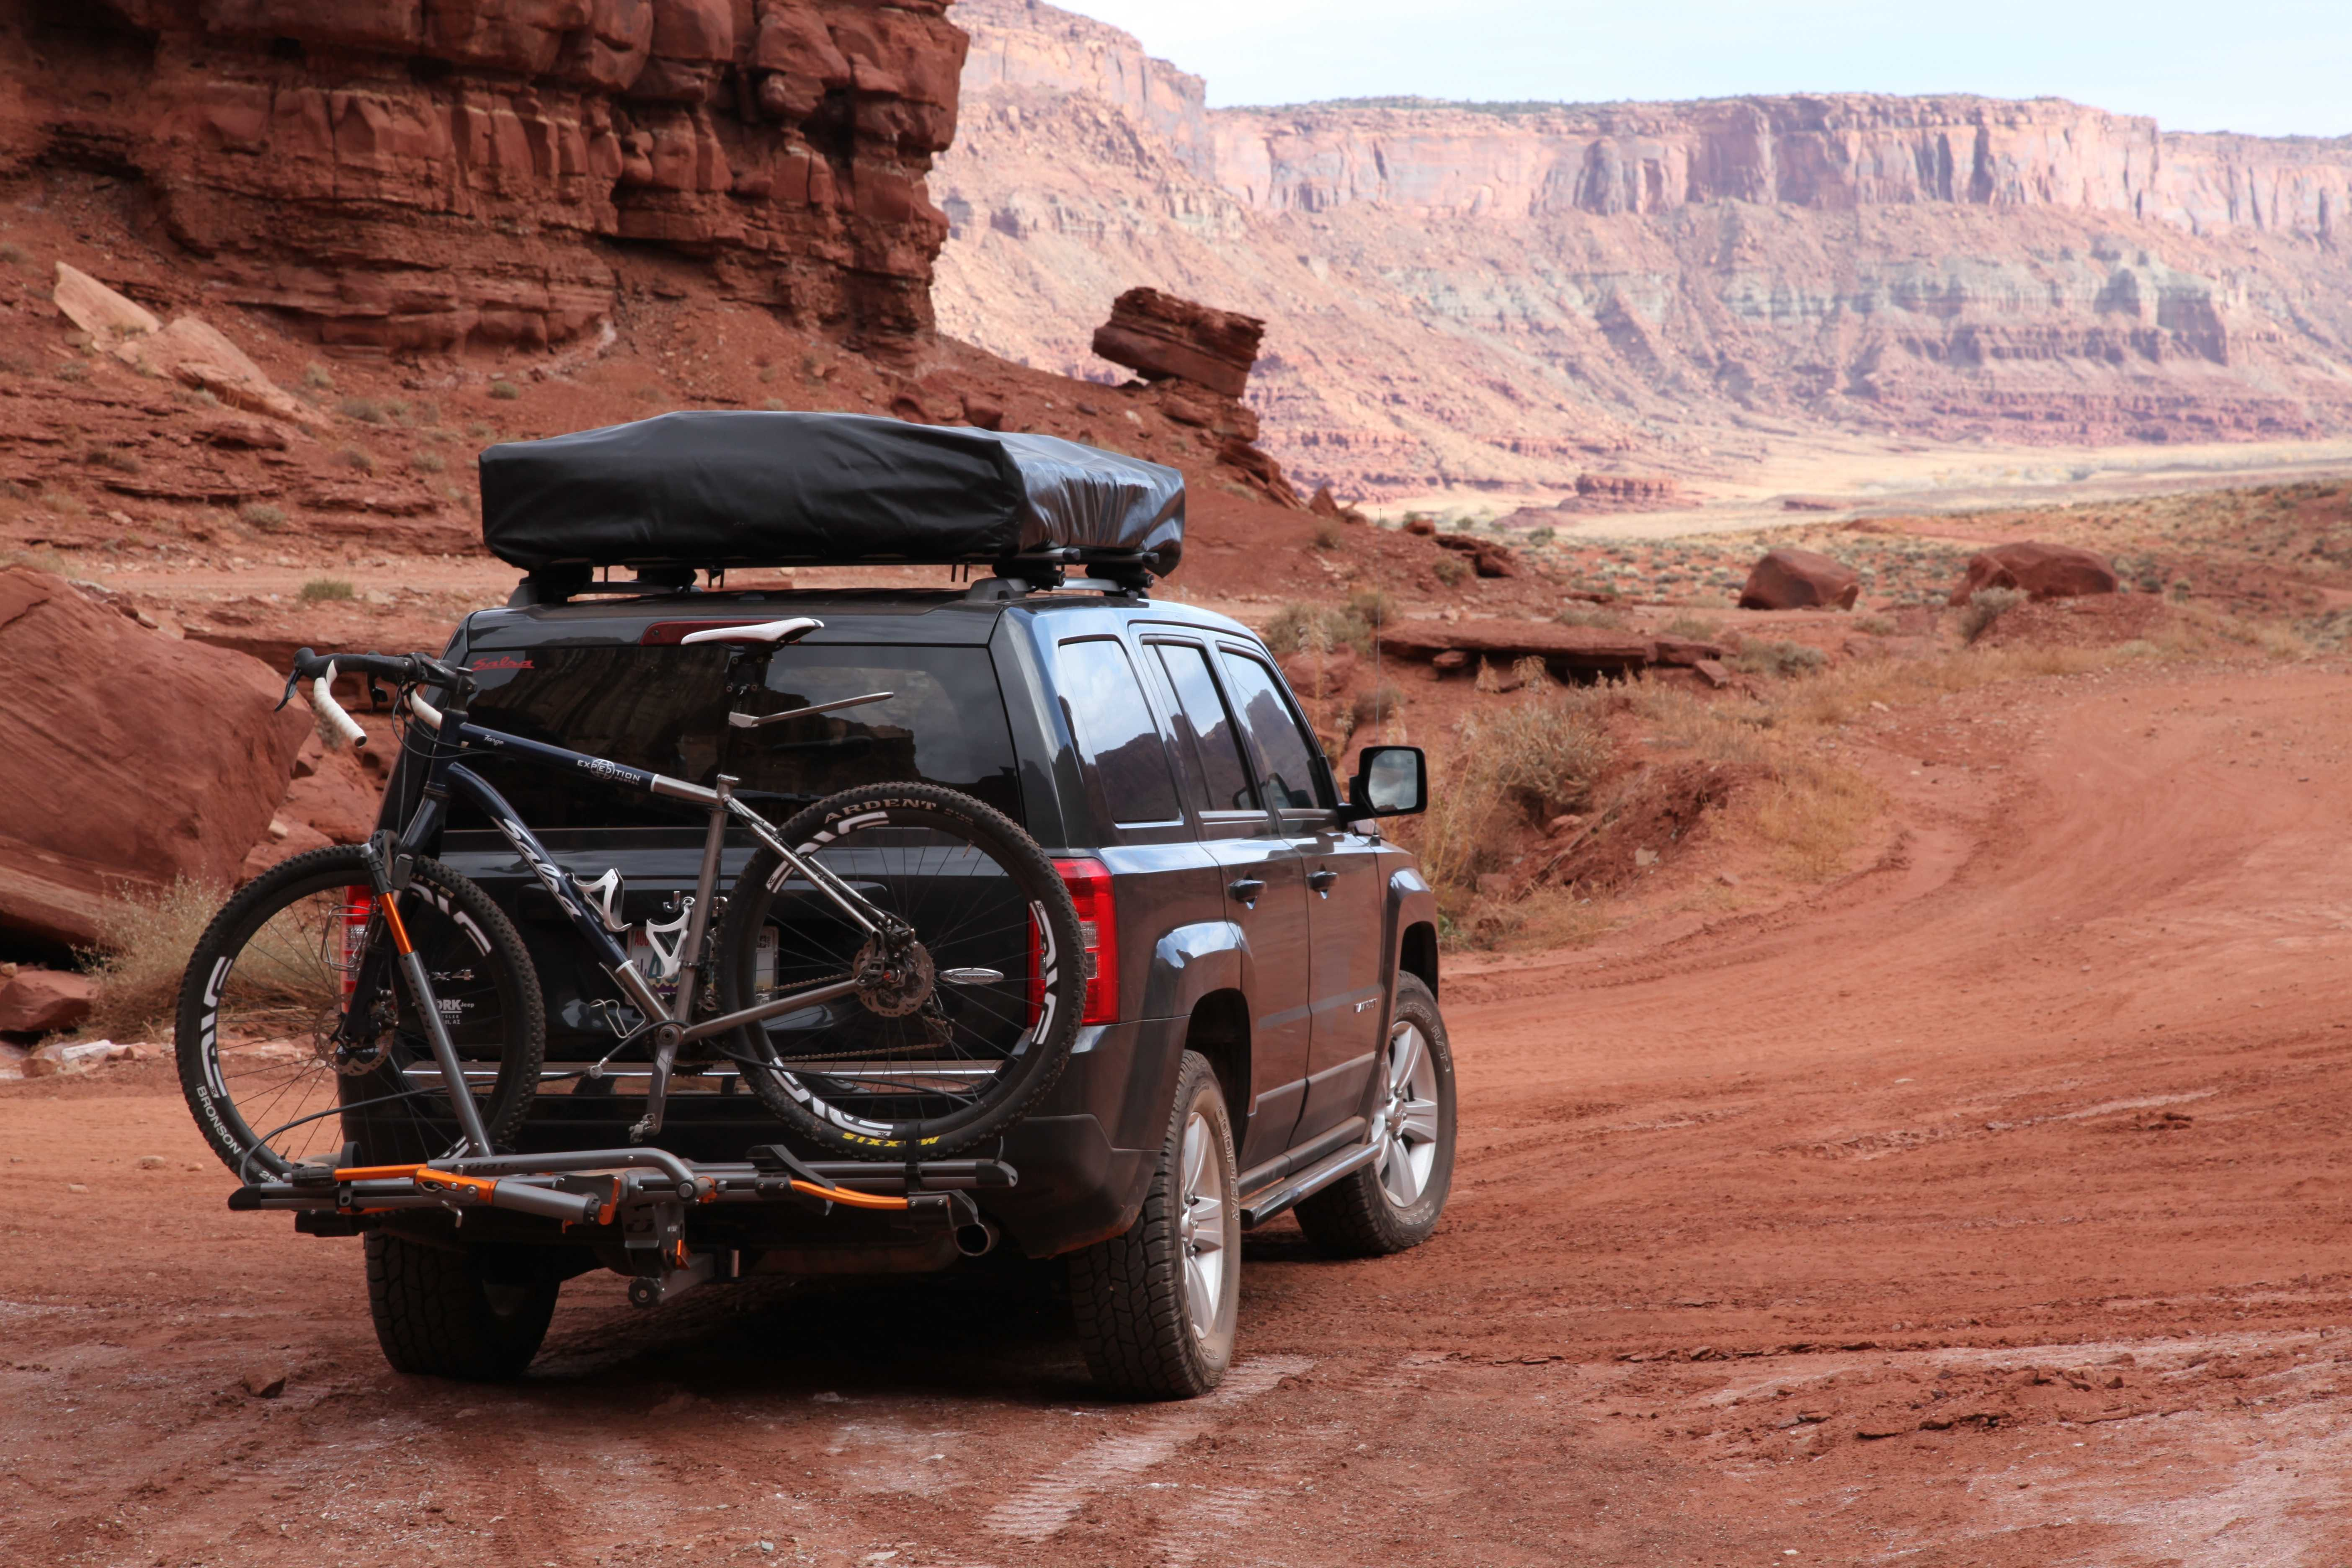 The Little Overlander Expedition Portalu0027s Jeep Patriot & Field Tested: James Baroud Horizon Vision (part 2) u2013 Expedition Portal